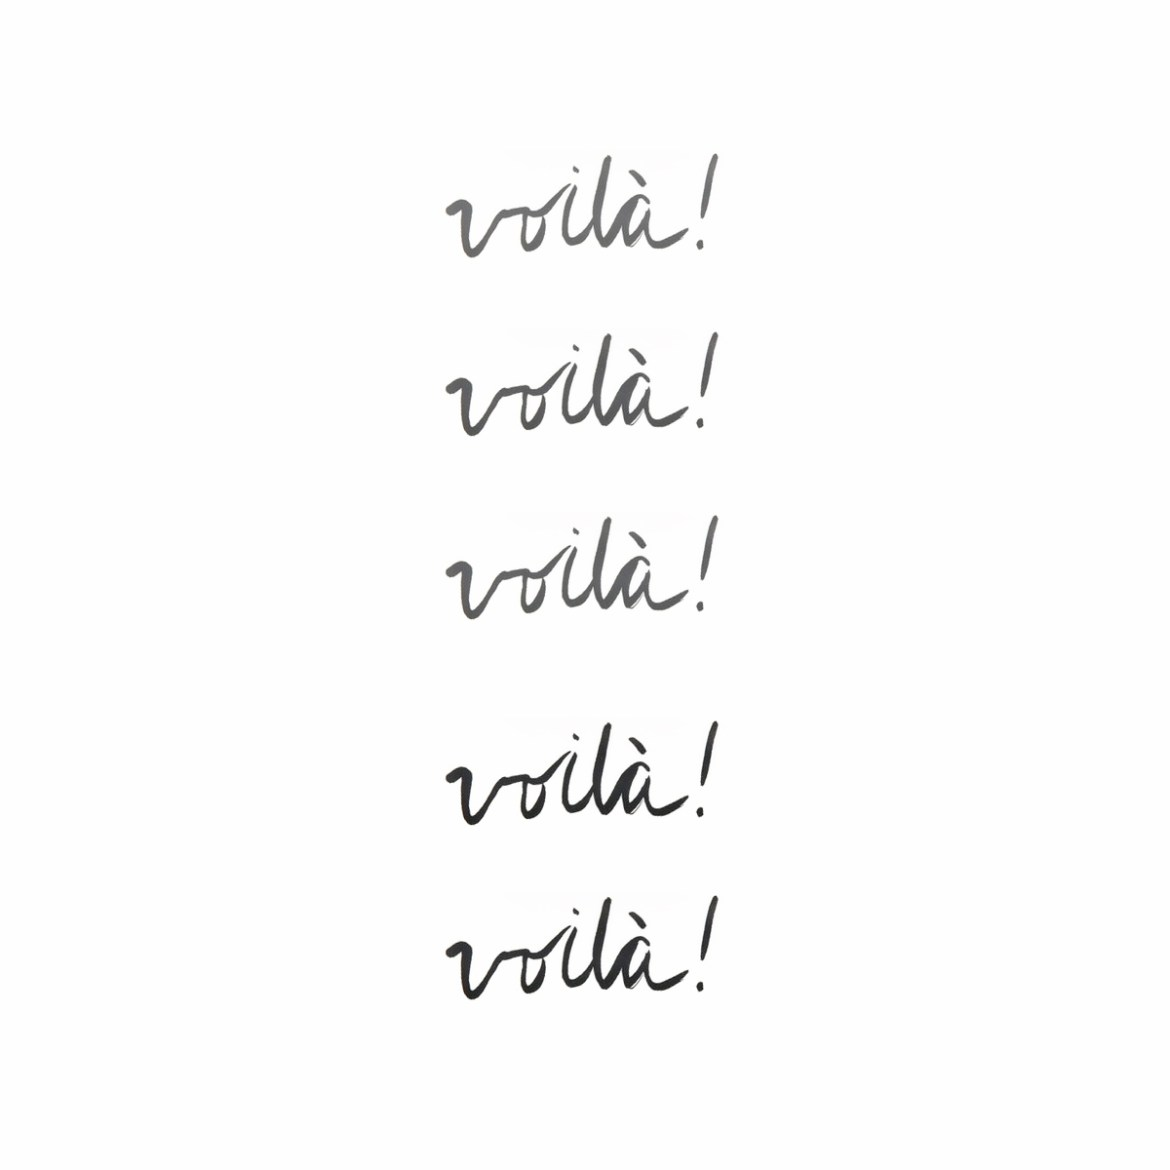 7things_7_voila